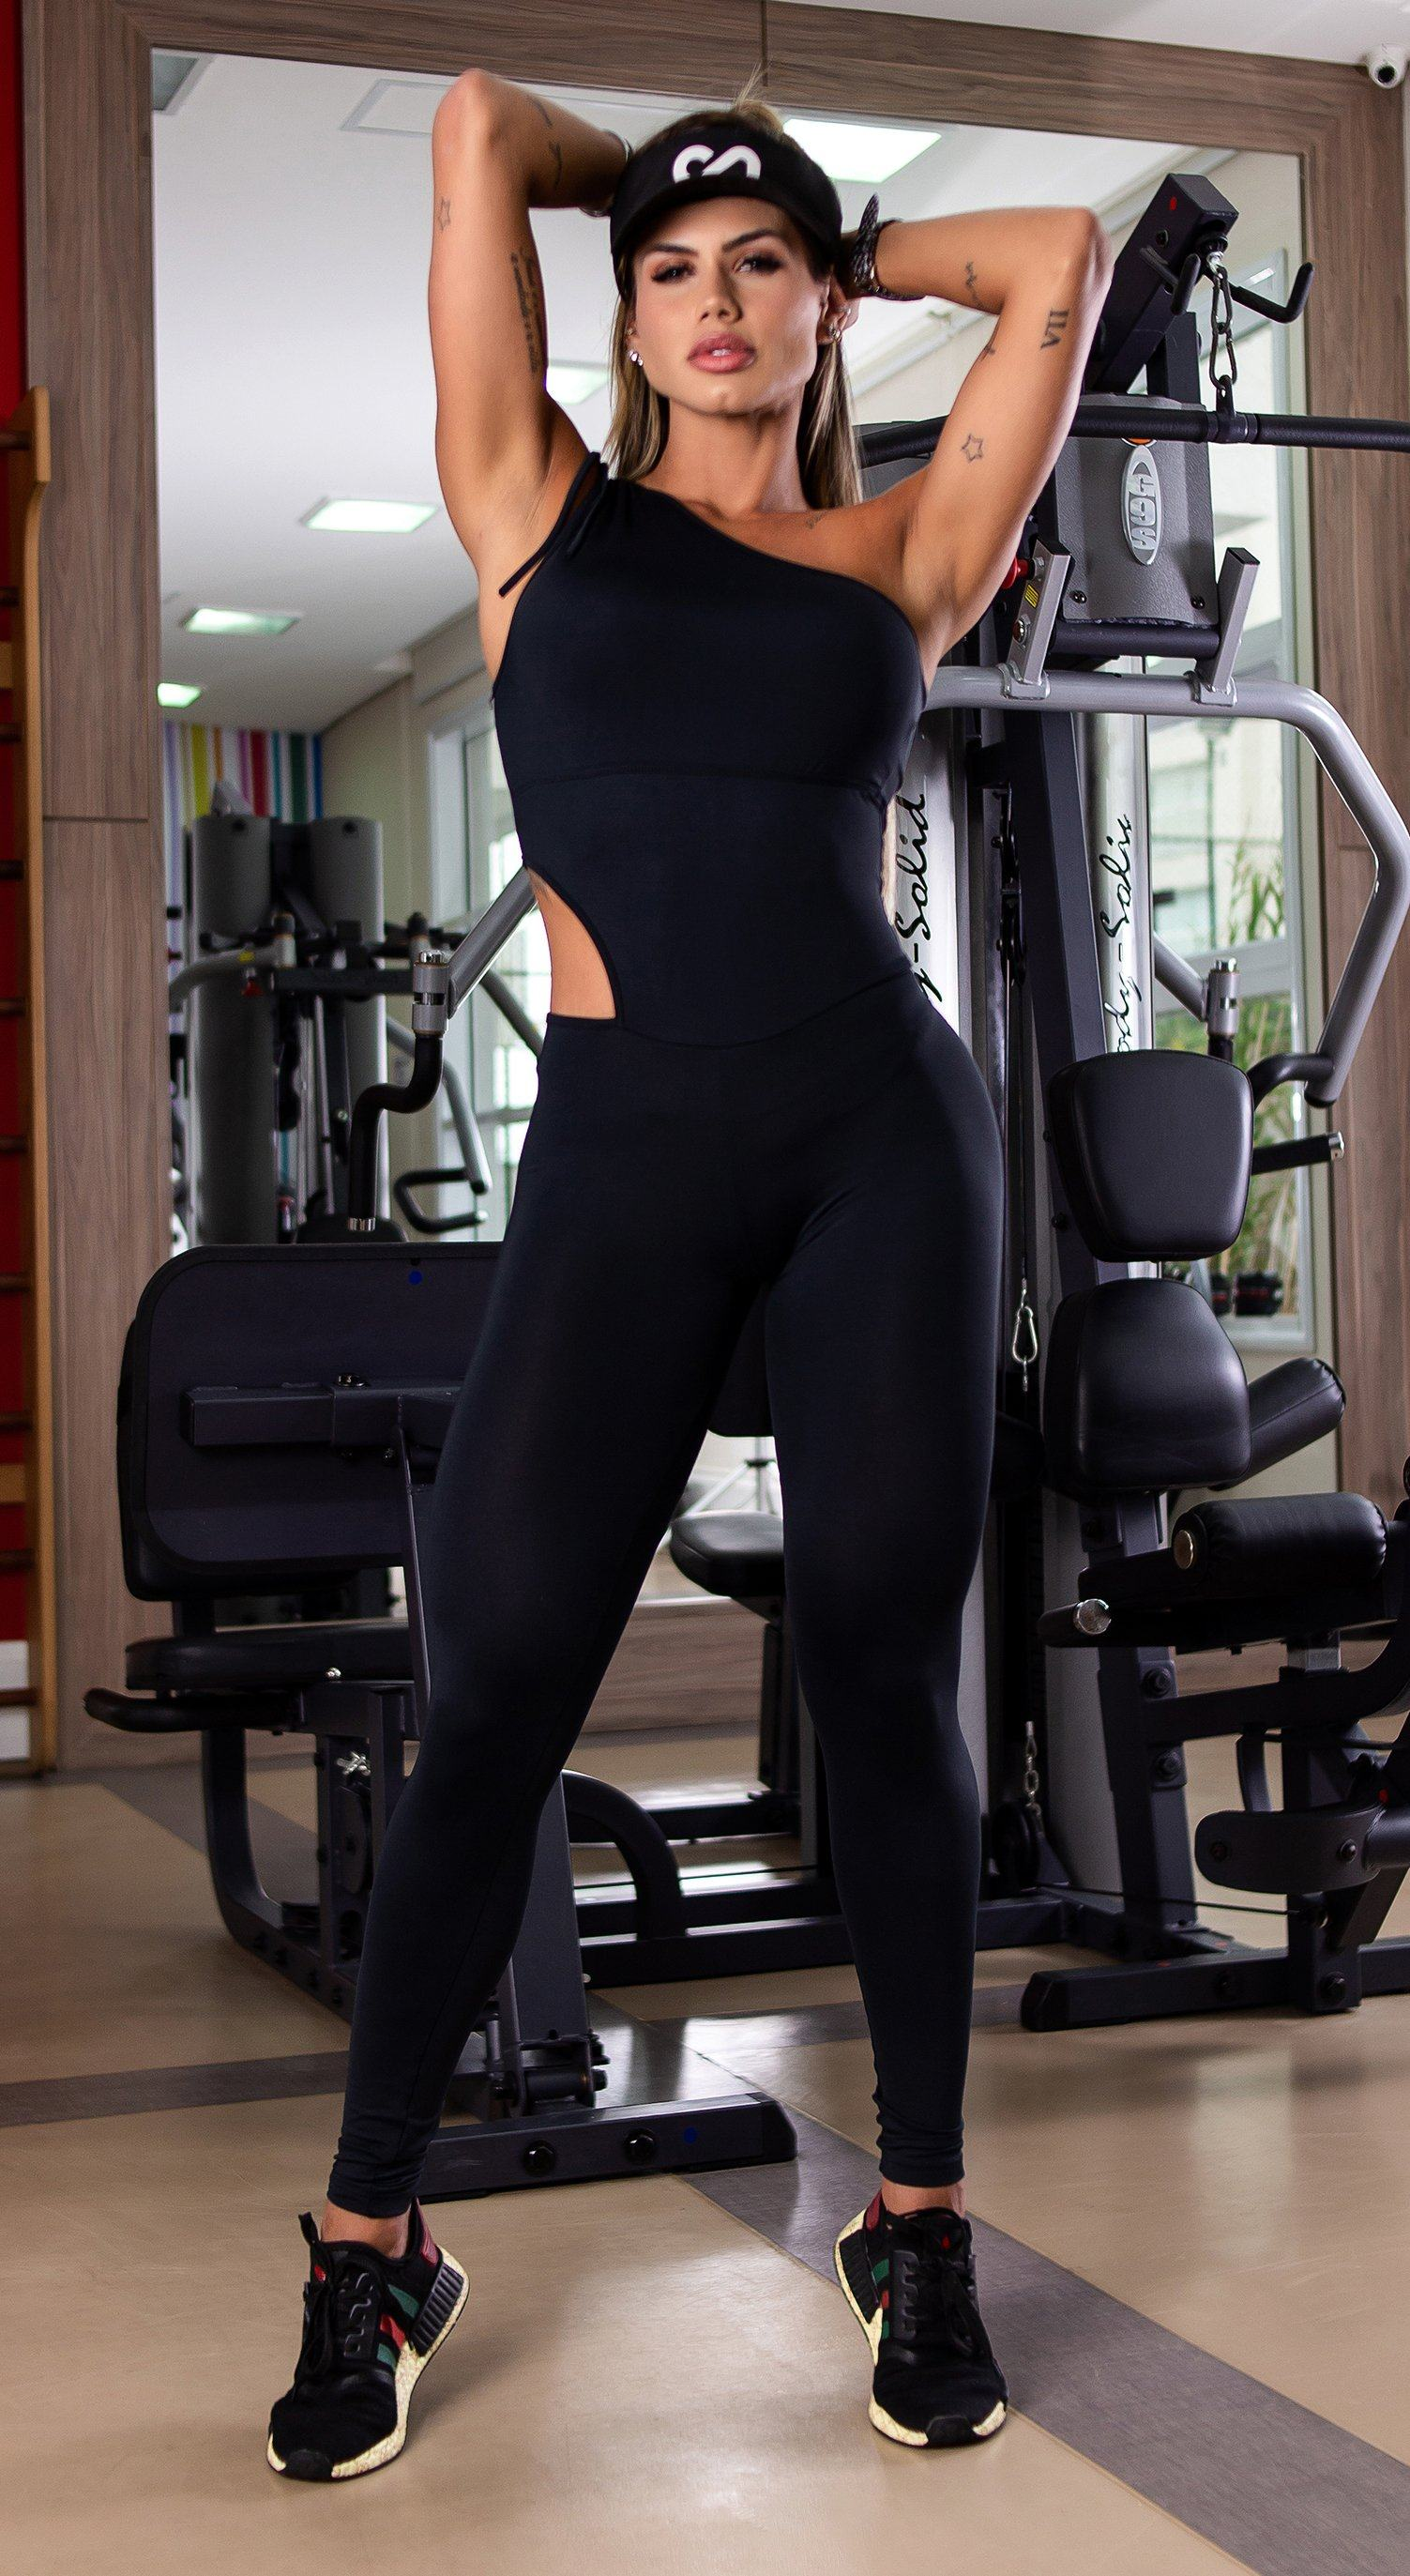 Brazilian Workout Jumpsuit - Scrunch Booty Lift! Adventure Bodysuit Black